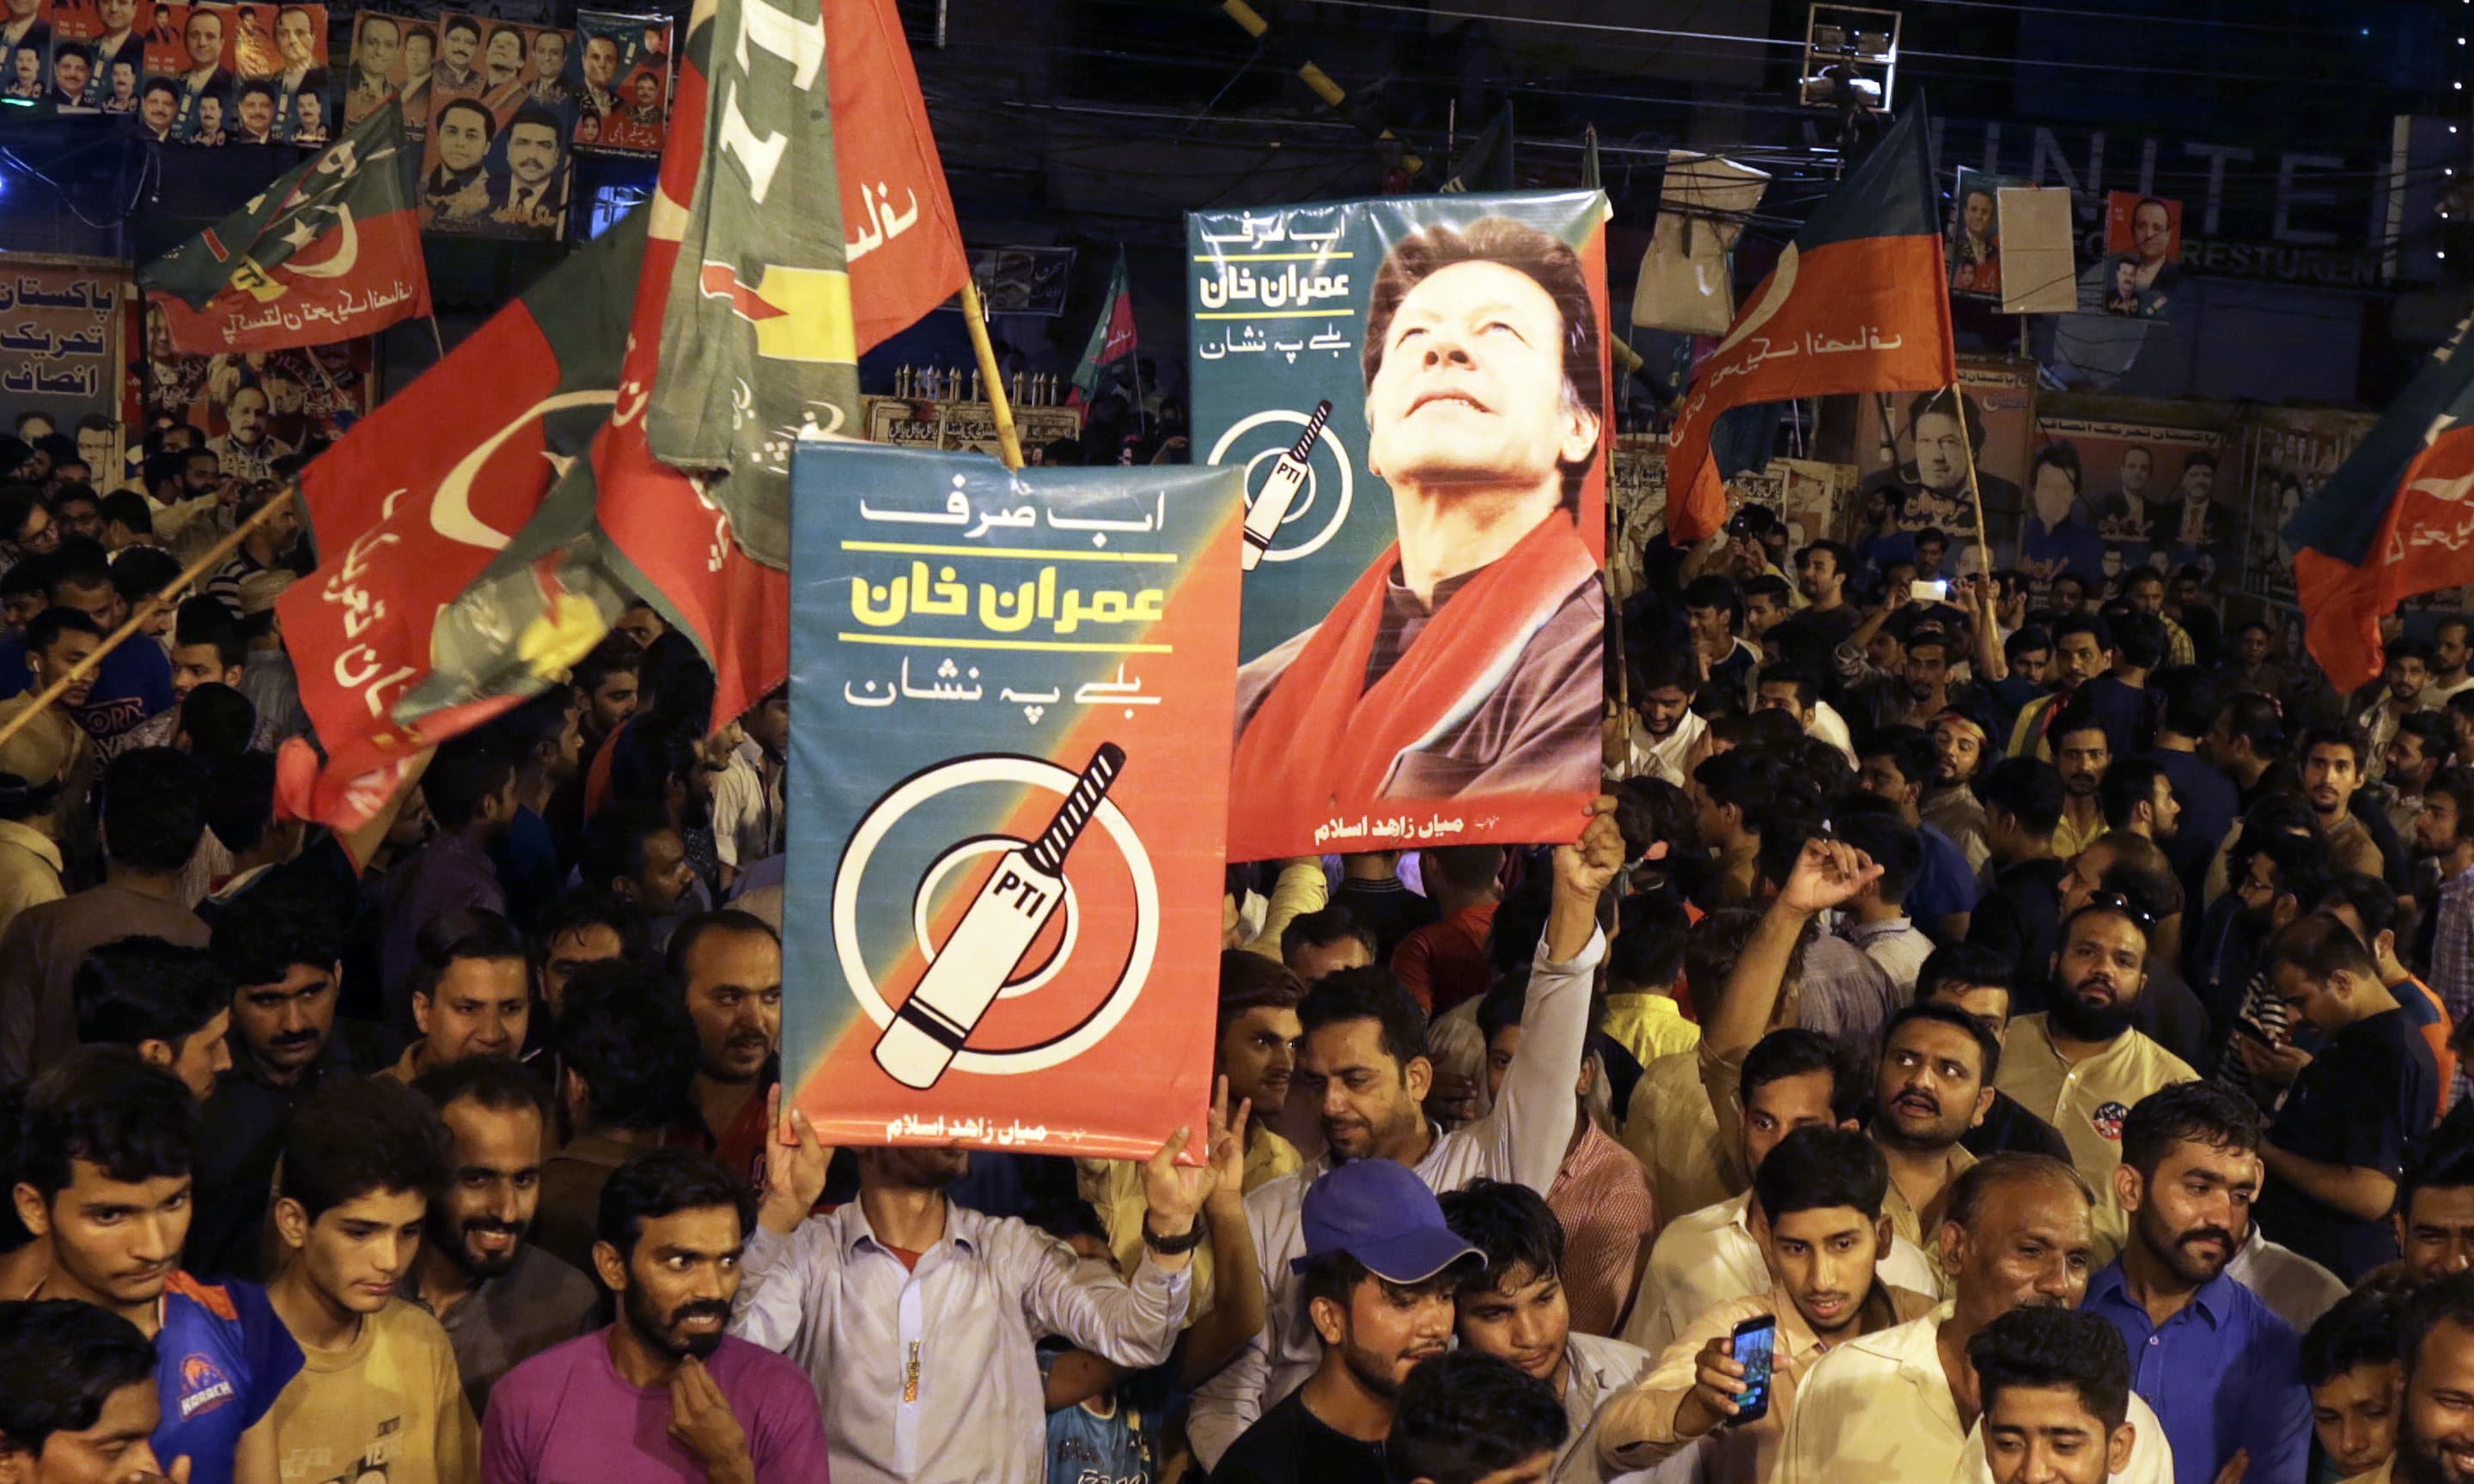 PTI supporters celebrate following the announcement of projected unofficial results indicating their candidates' success in the elections in Islamabad. —AP